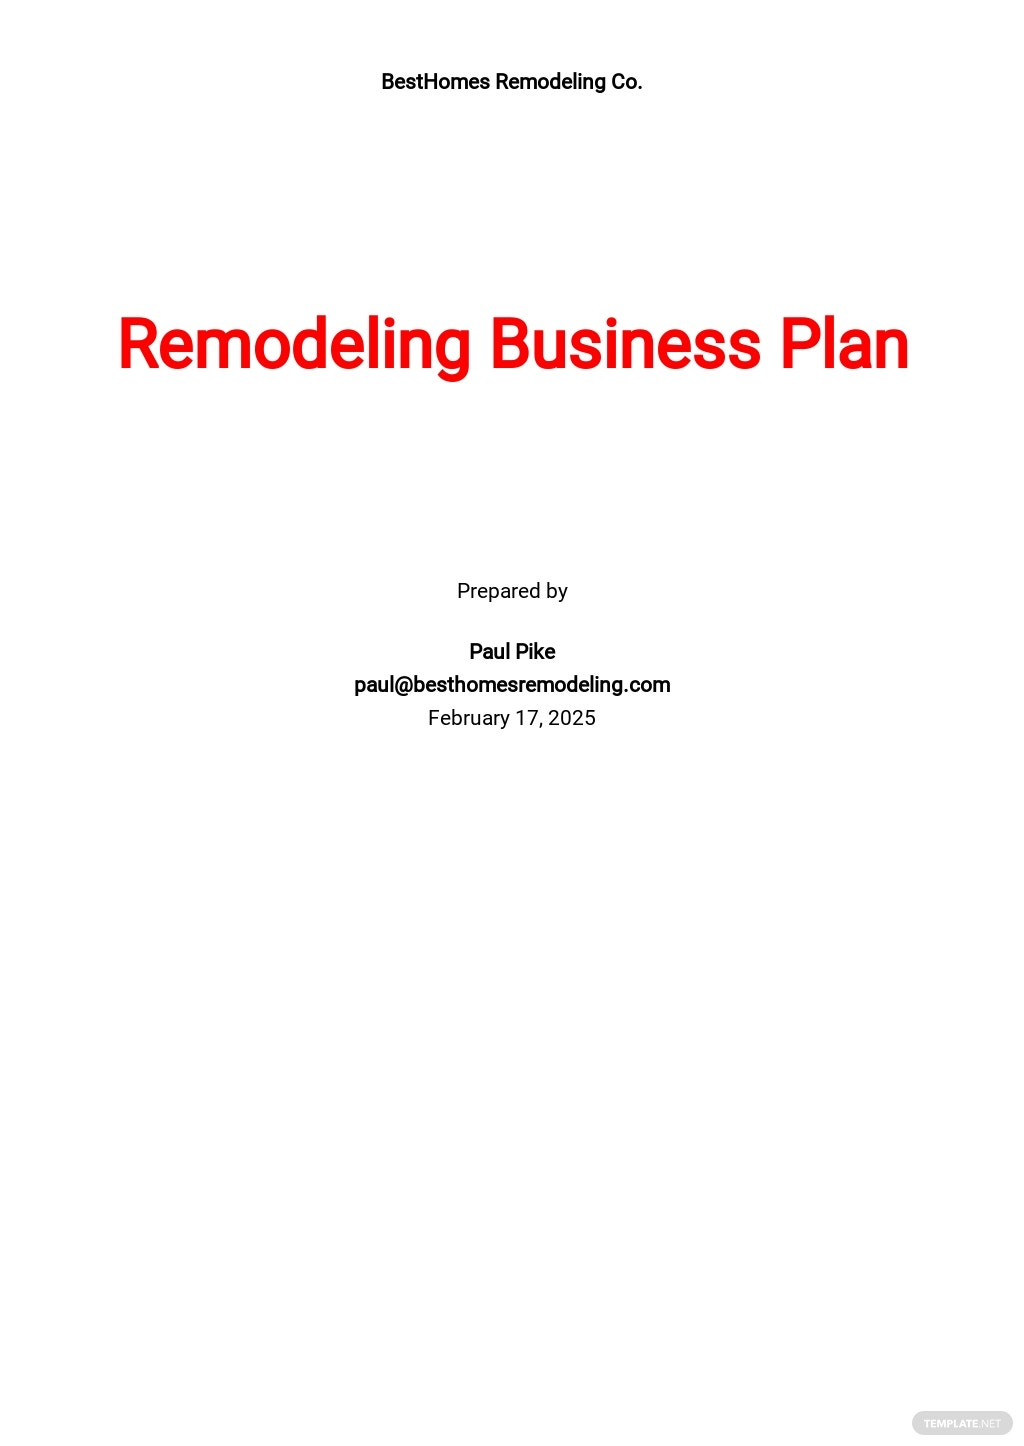 Remodeling Business Plan Template